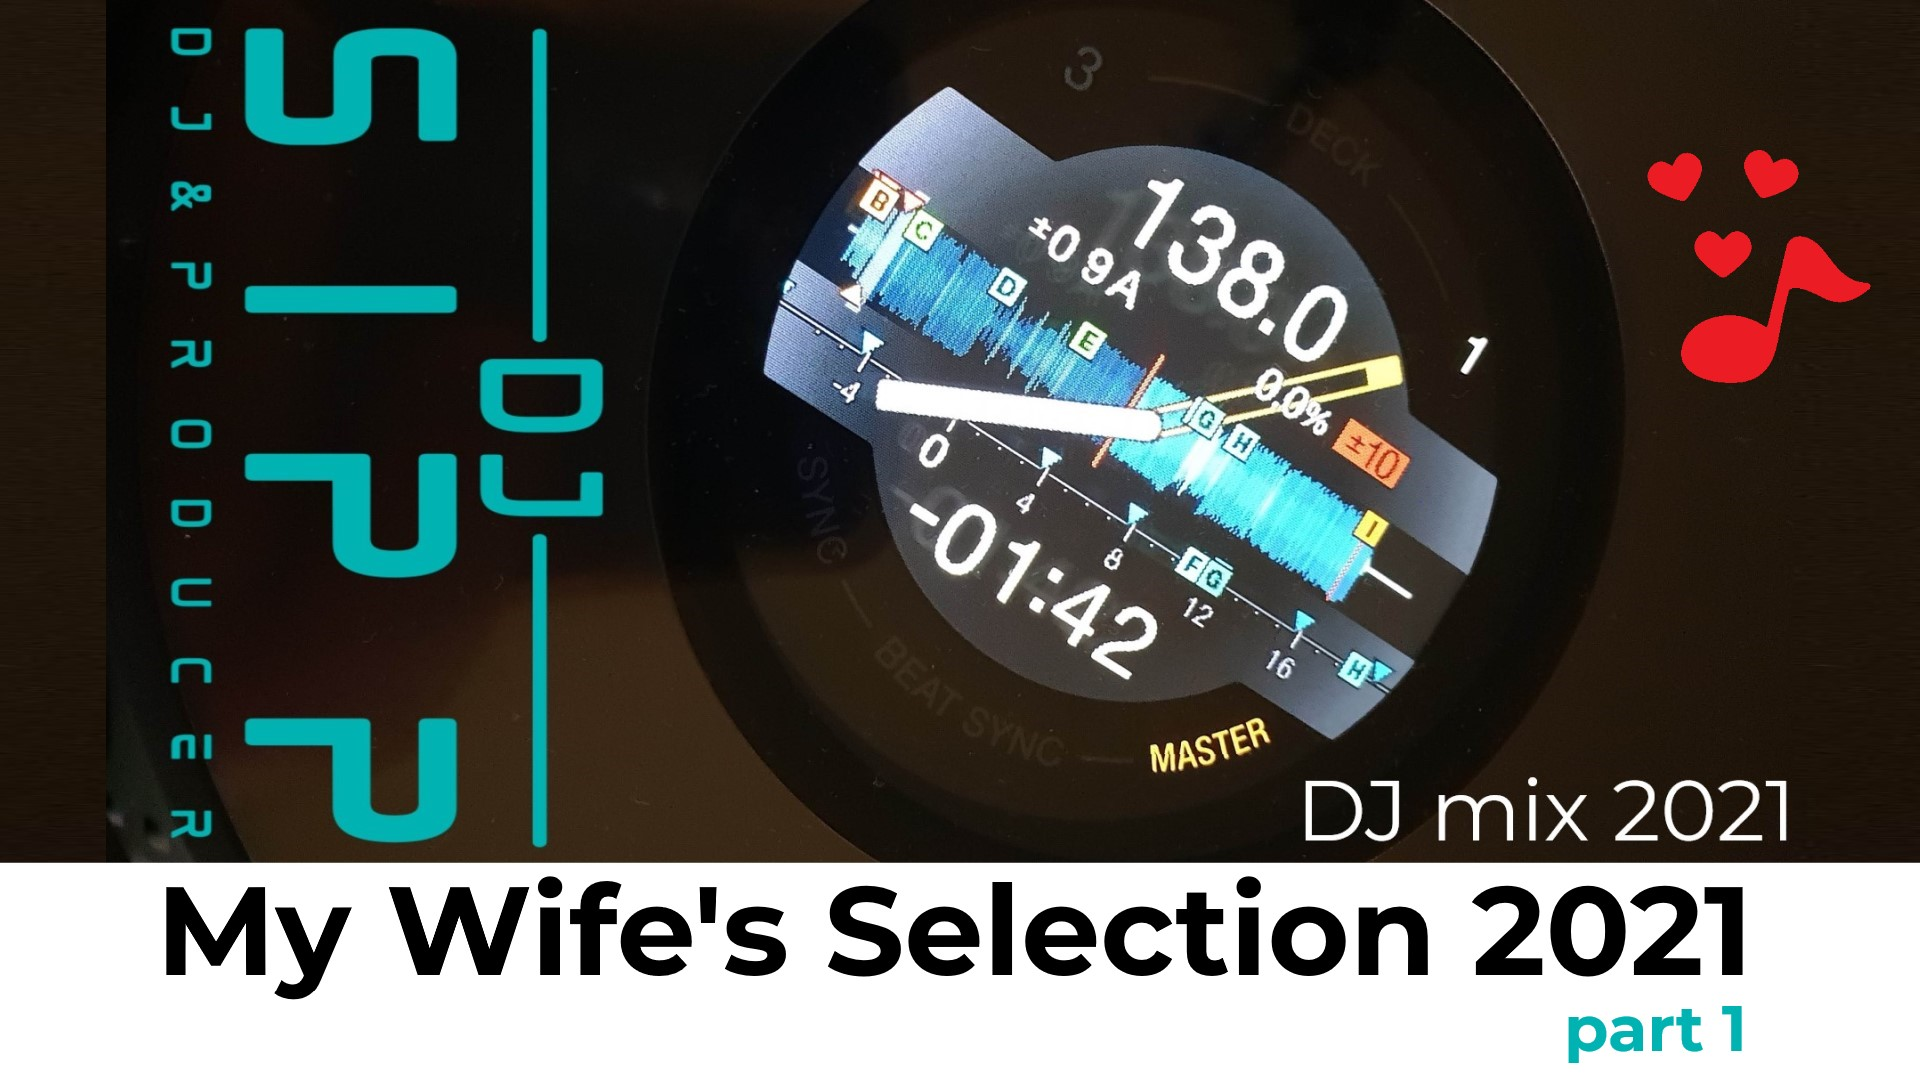 mywife2021part1-mix_cover_2021